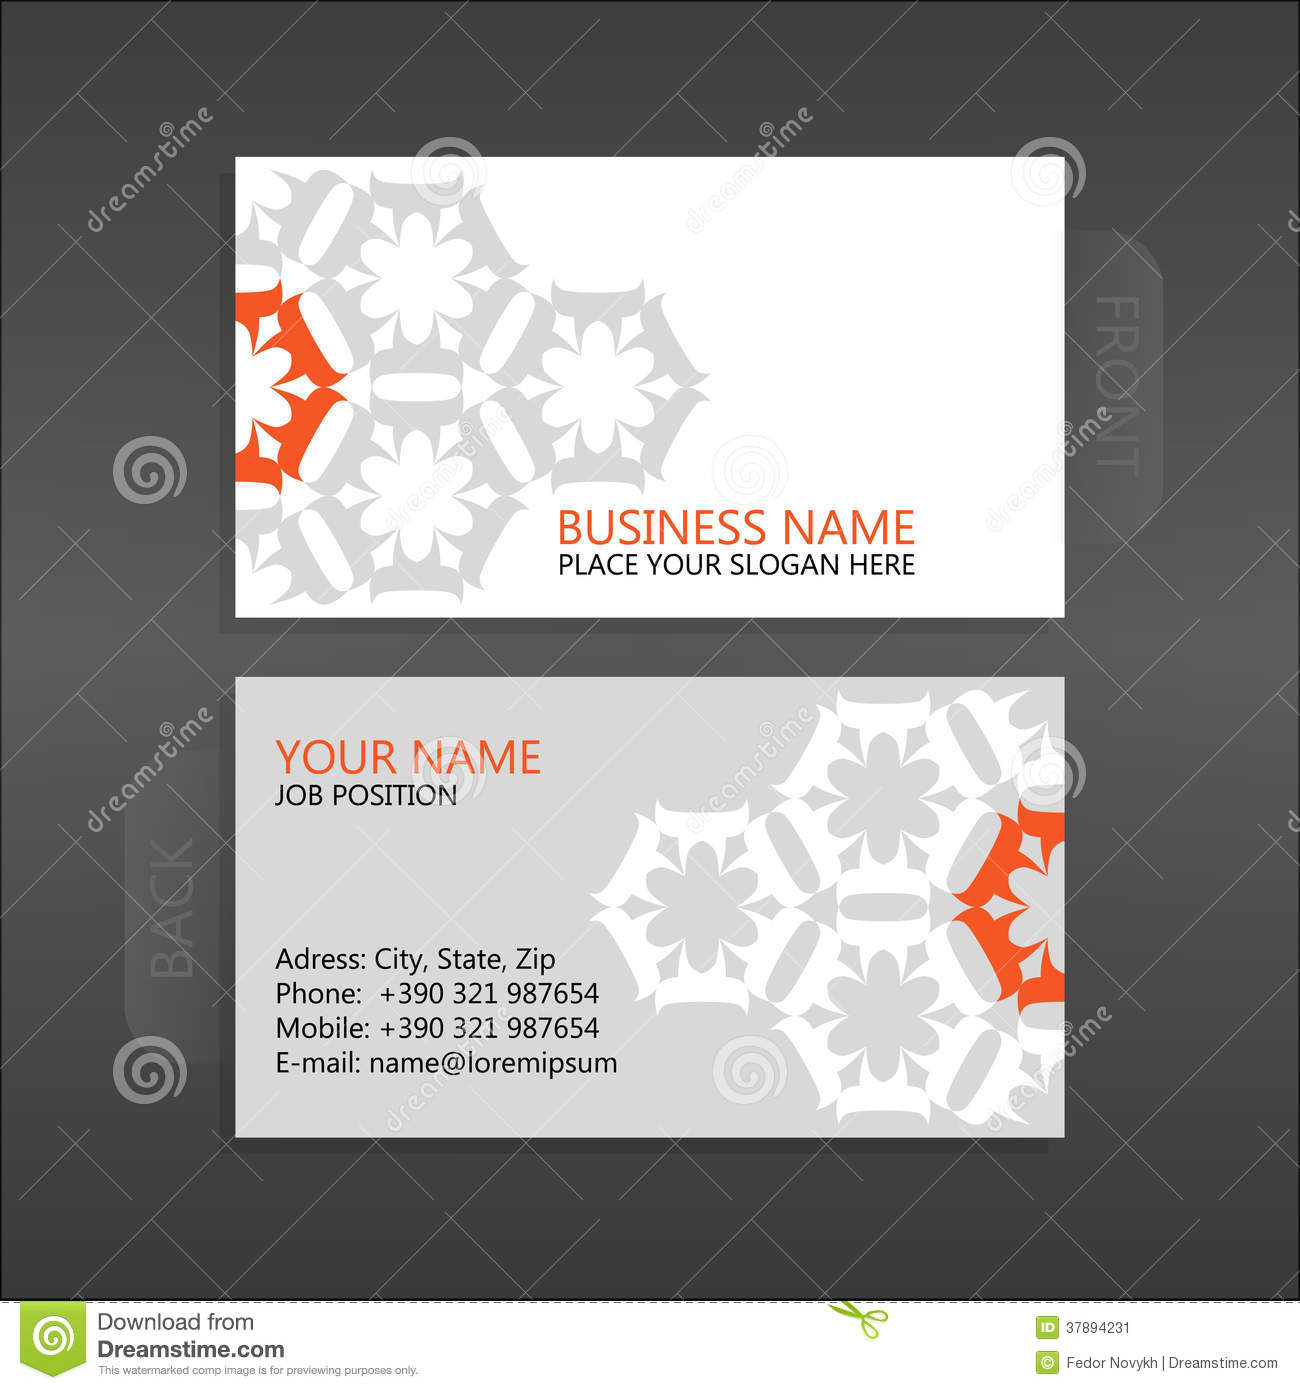 Business card. Floral